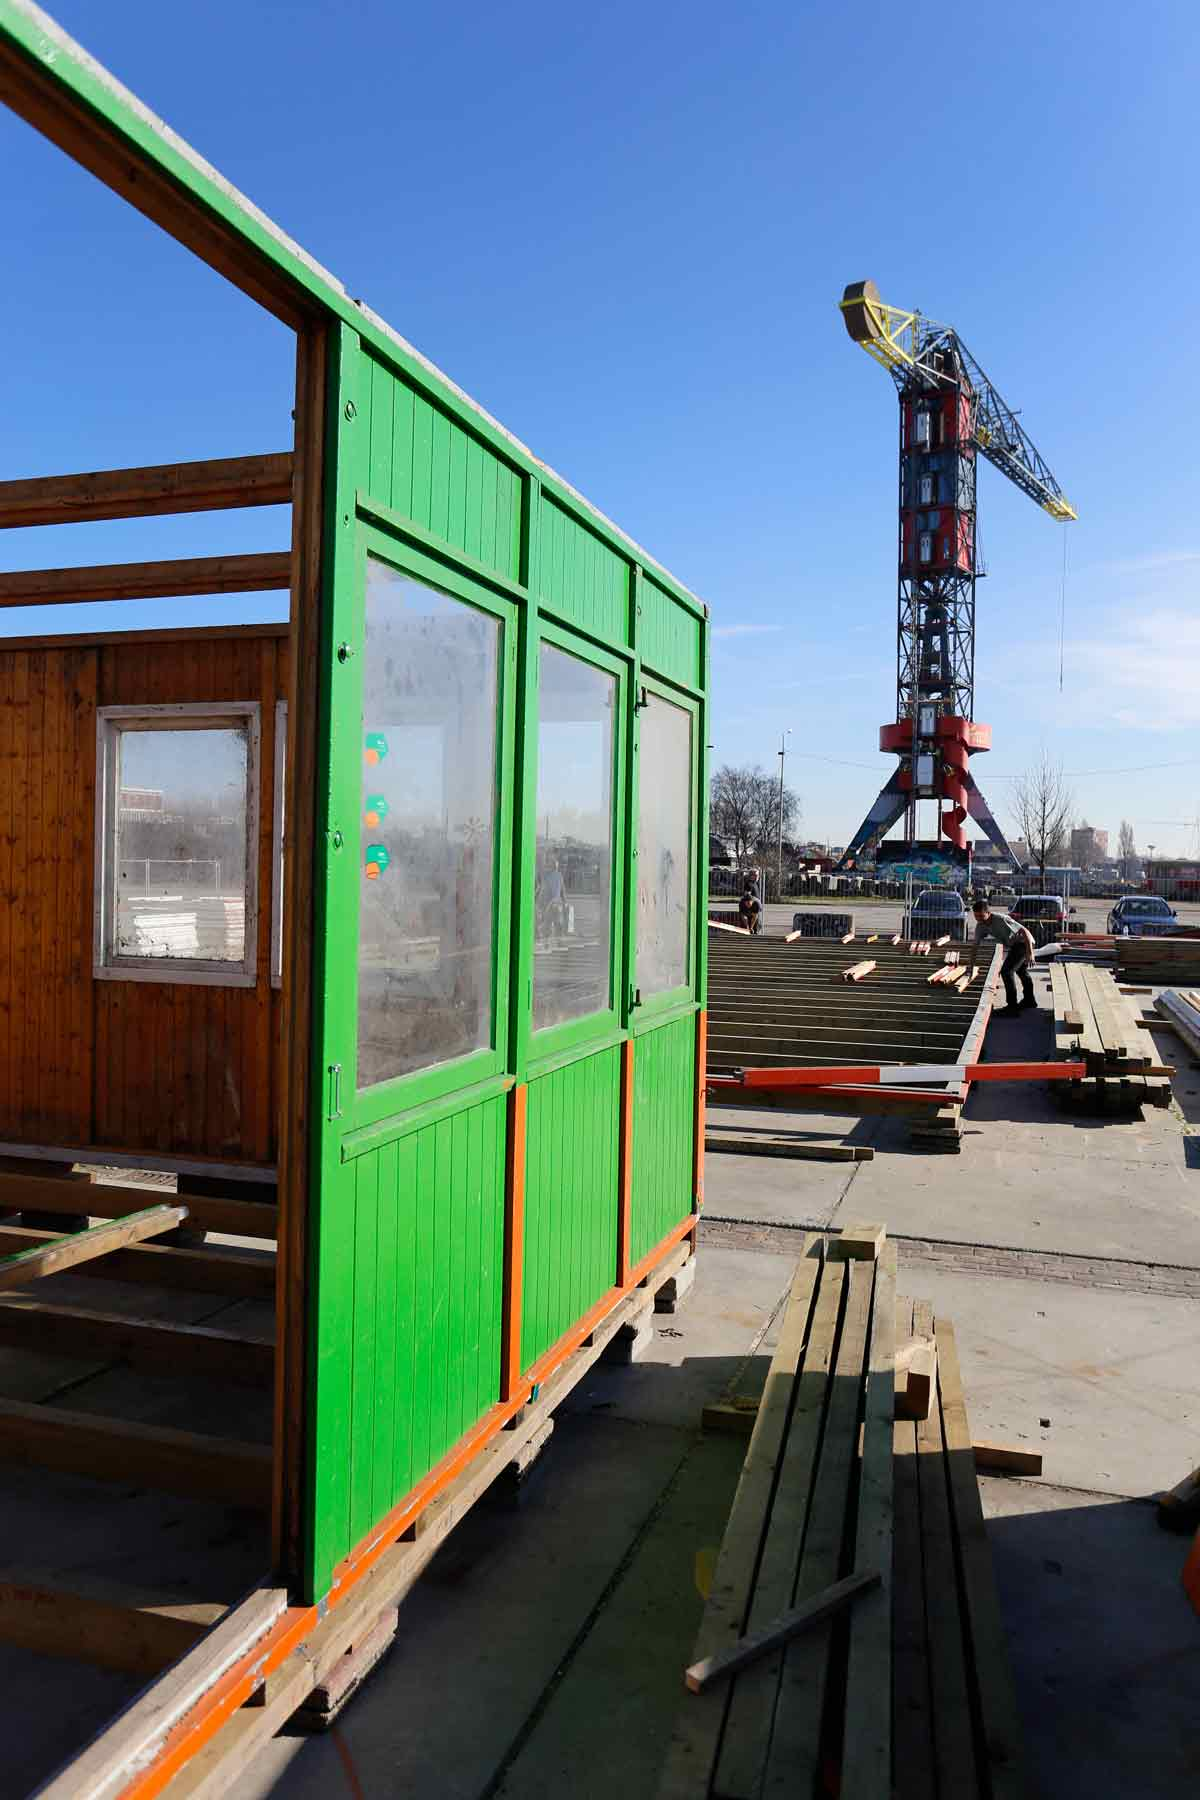 photograph of a green shack under construction to the left and the NDSM crane in the background